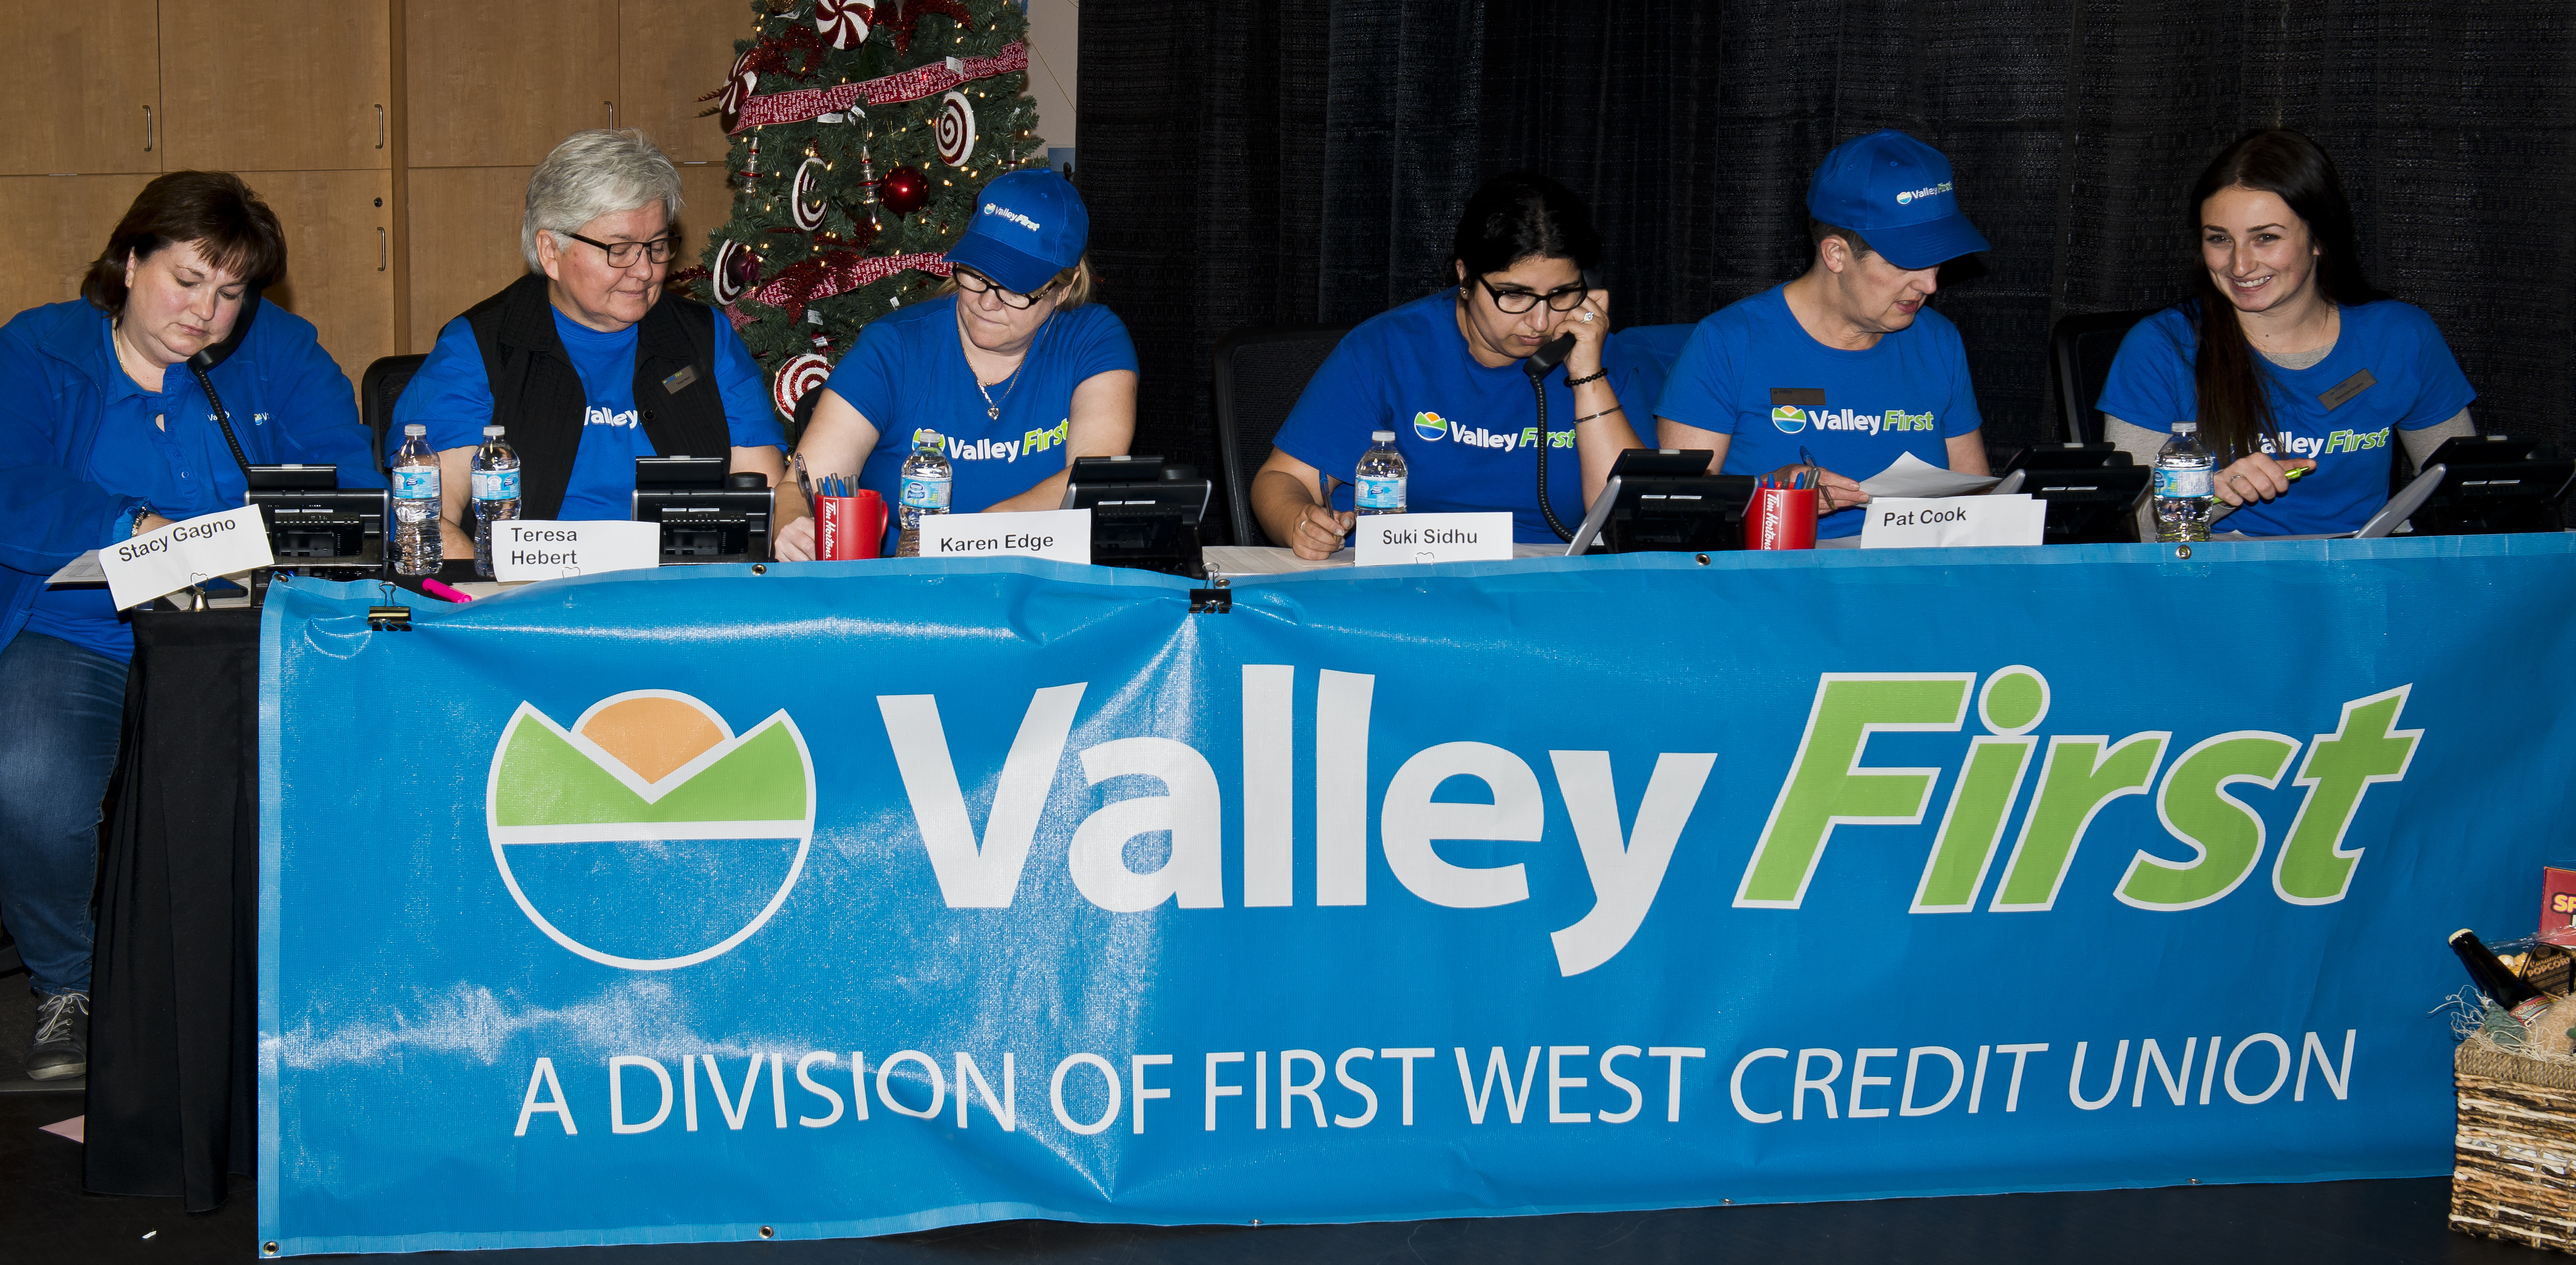 Valley First